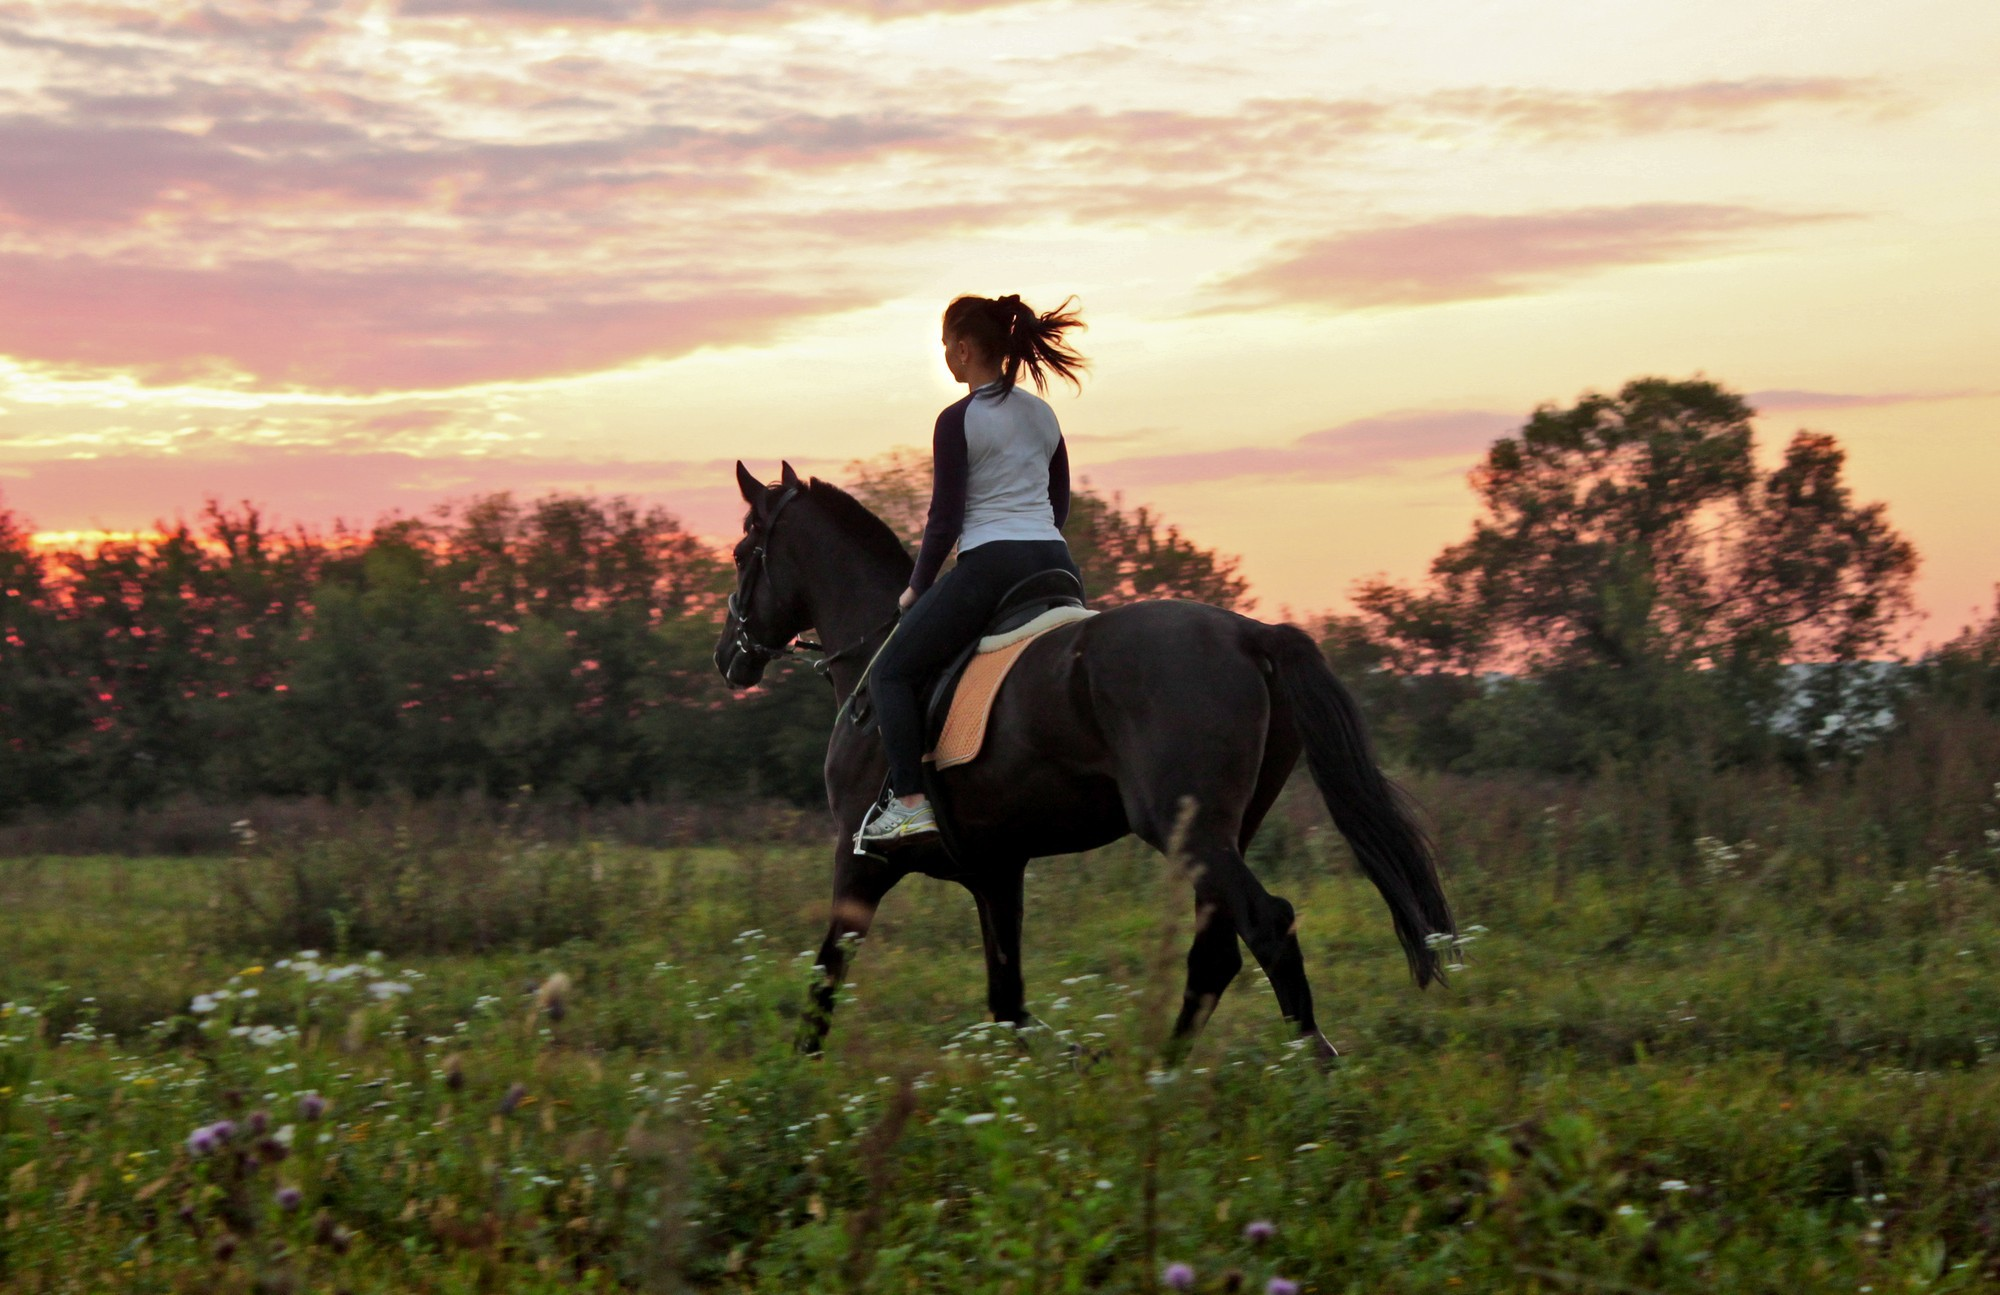 Horse Riding Wallpapers Horse Riding In Nature 142561 Hd Wallpaper Backgrounds Download